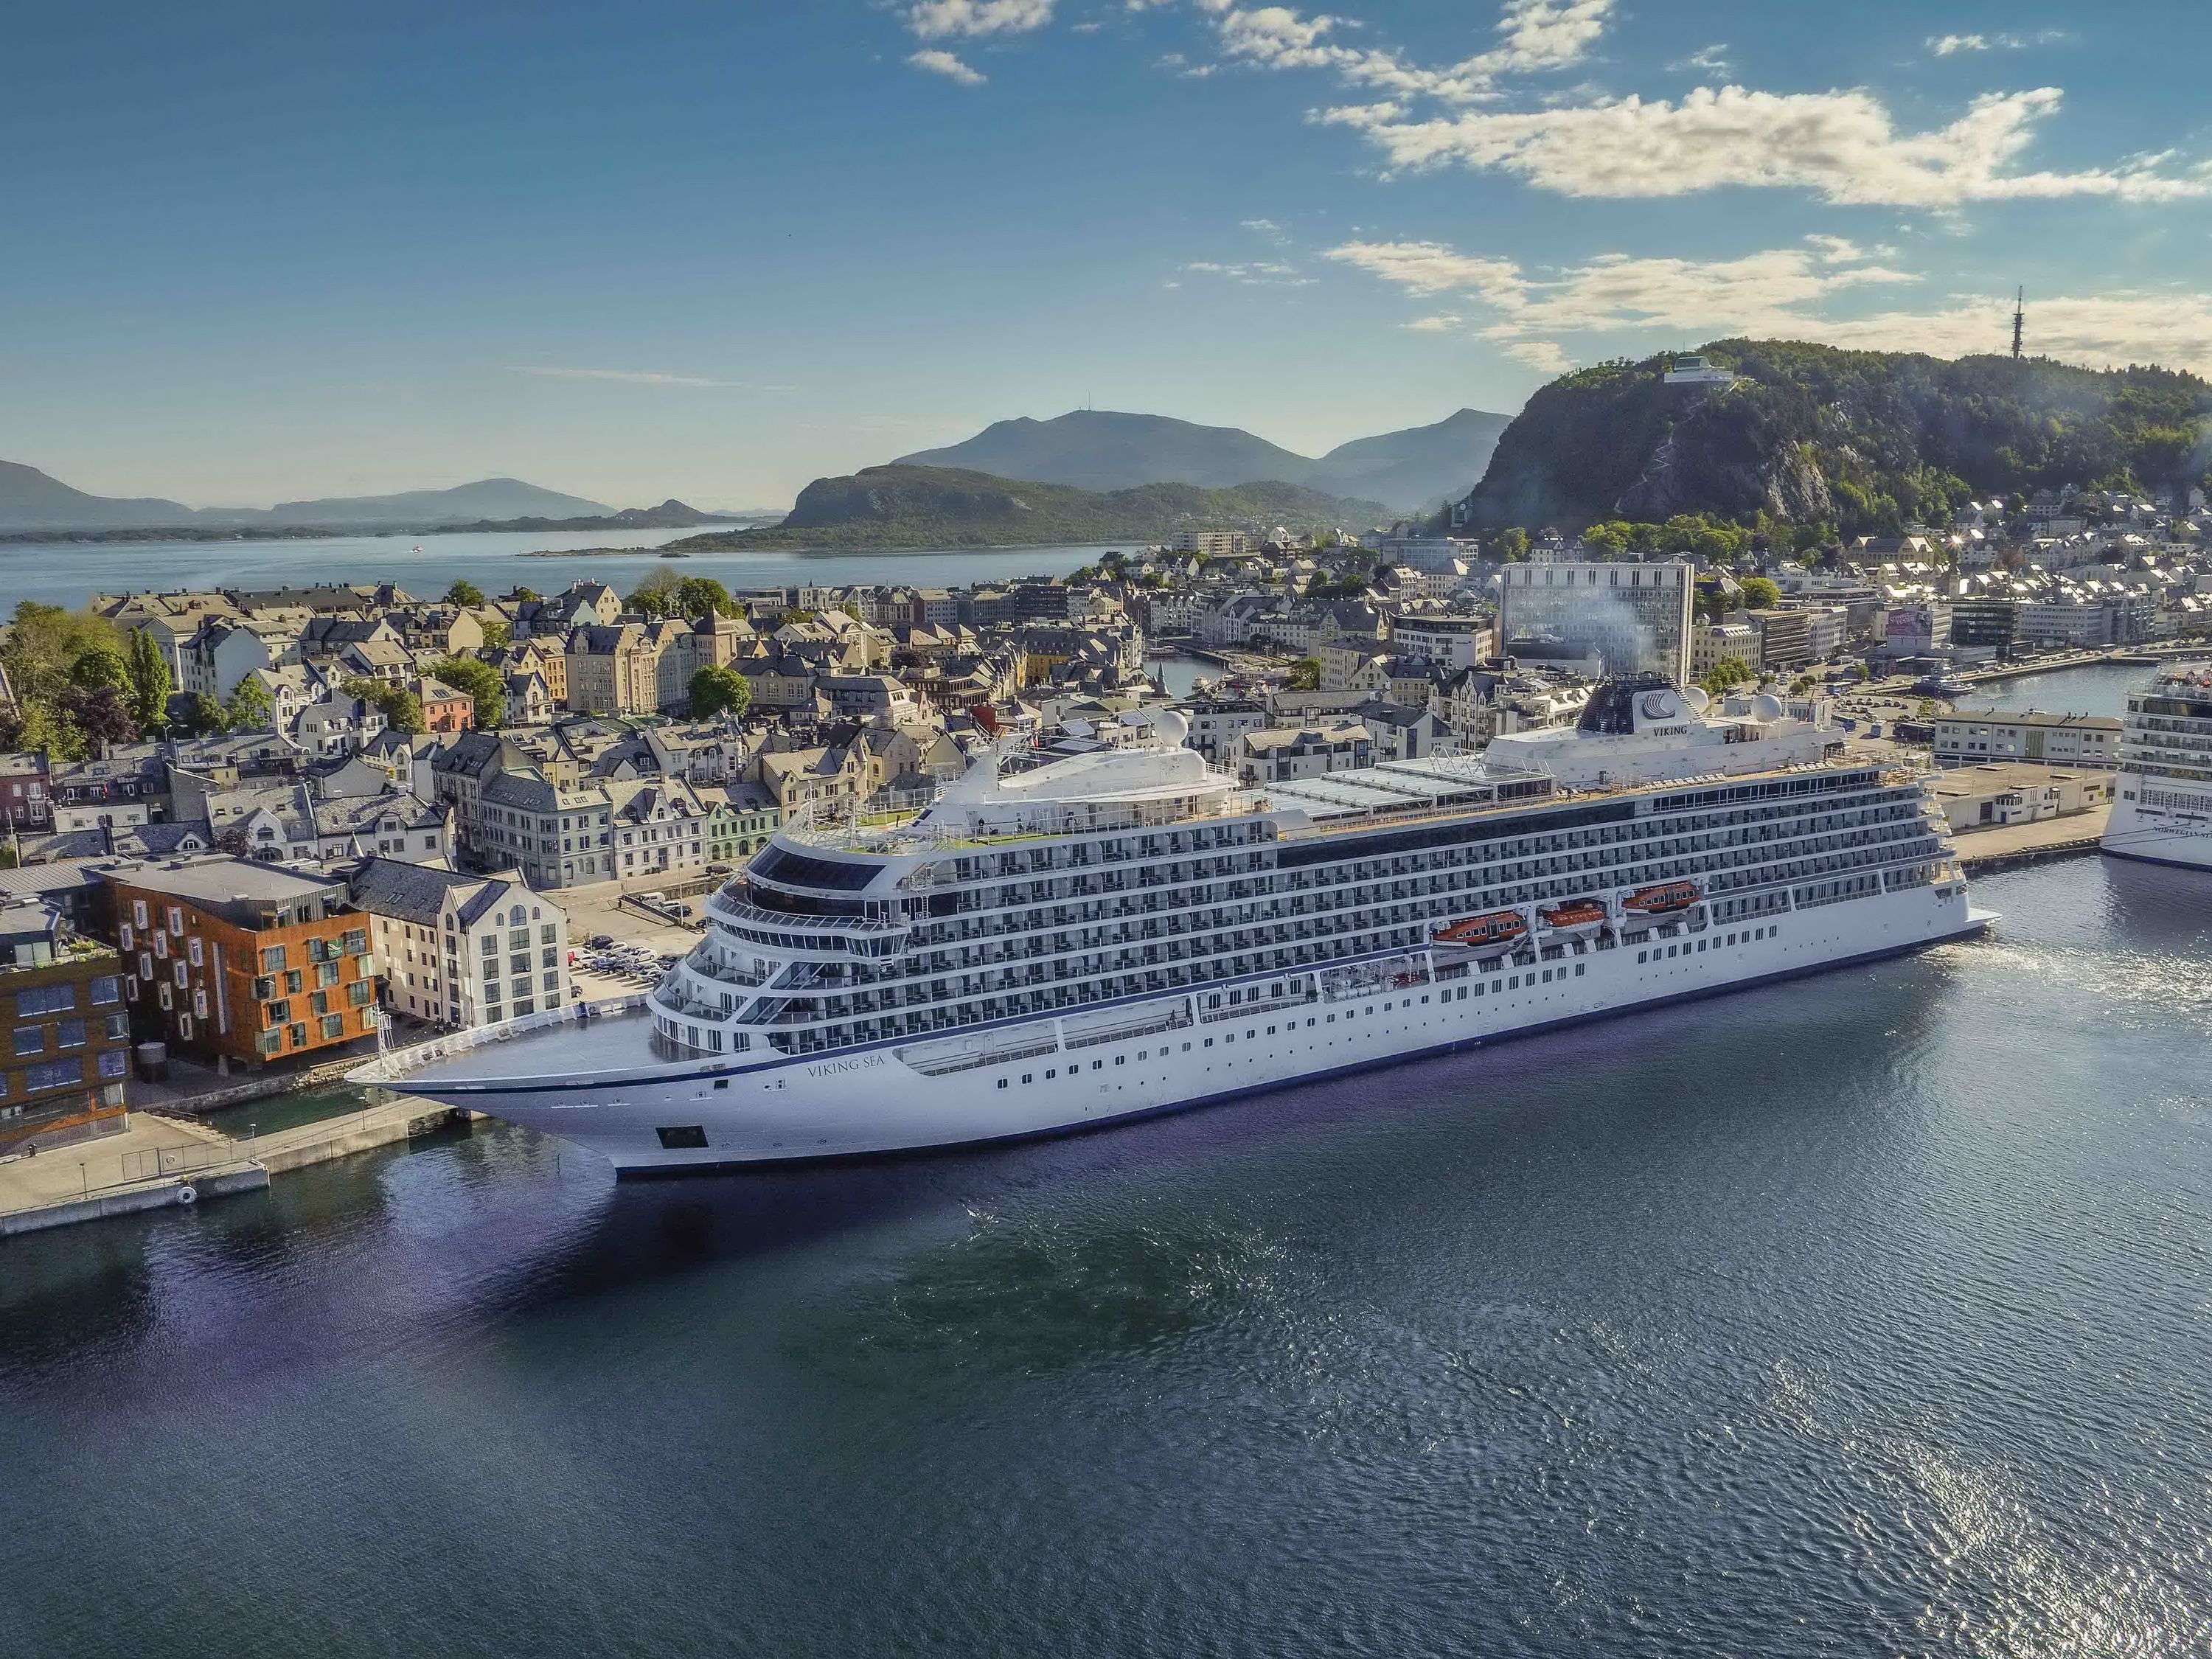 10 Things to Love About the Viking Sea Cruise Ship